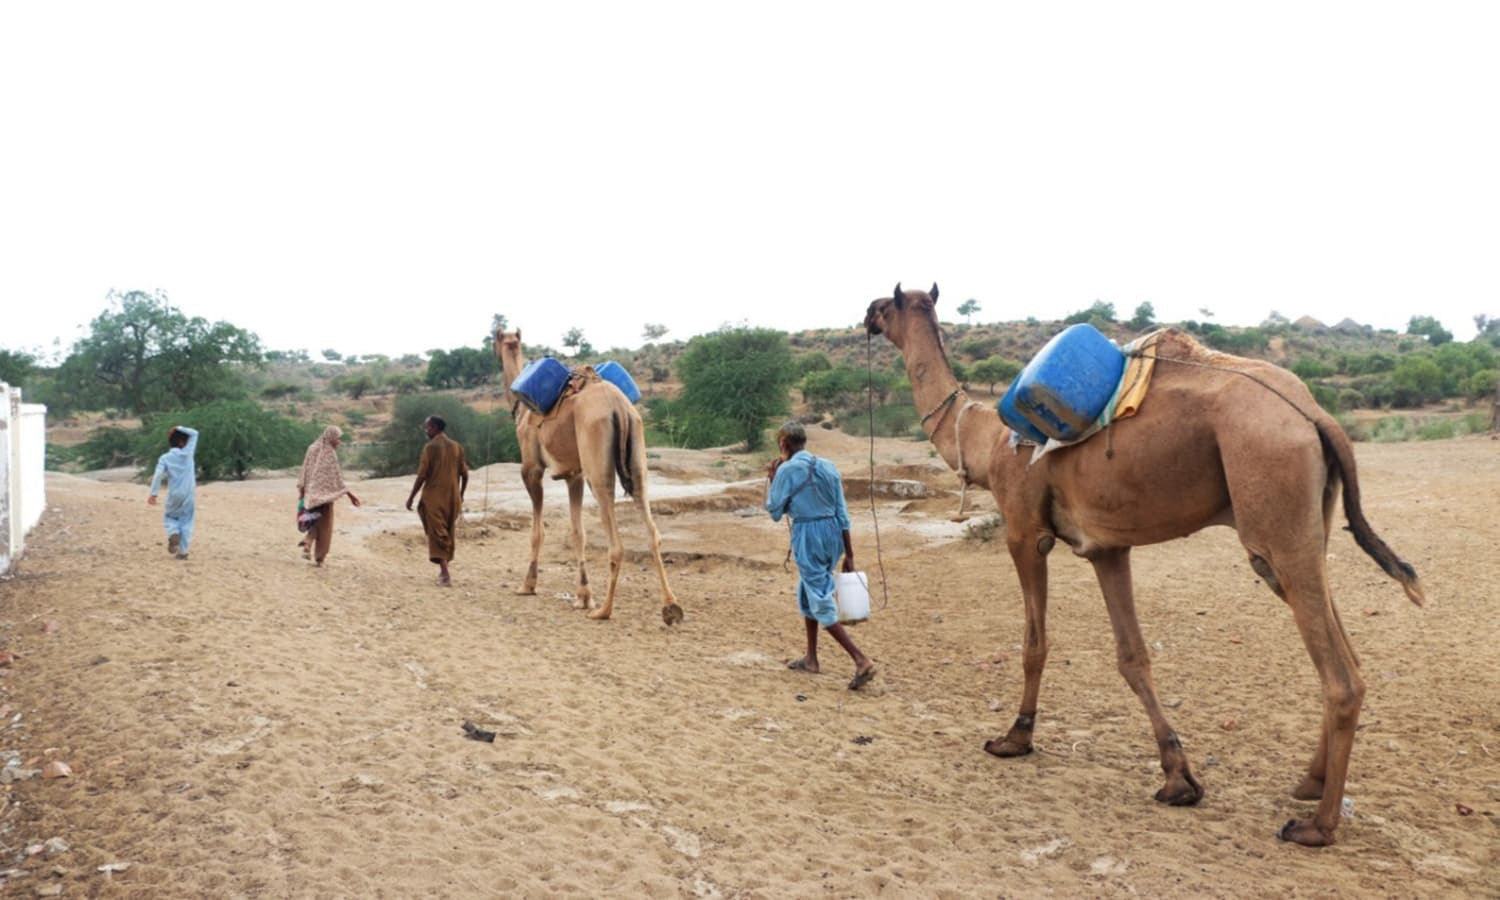 In pictures: Ravaged by drought, Tharis forced to turn to greener pastures